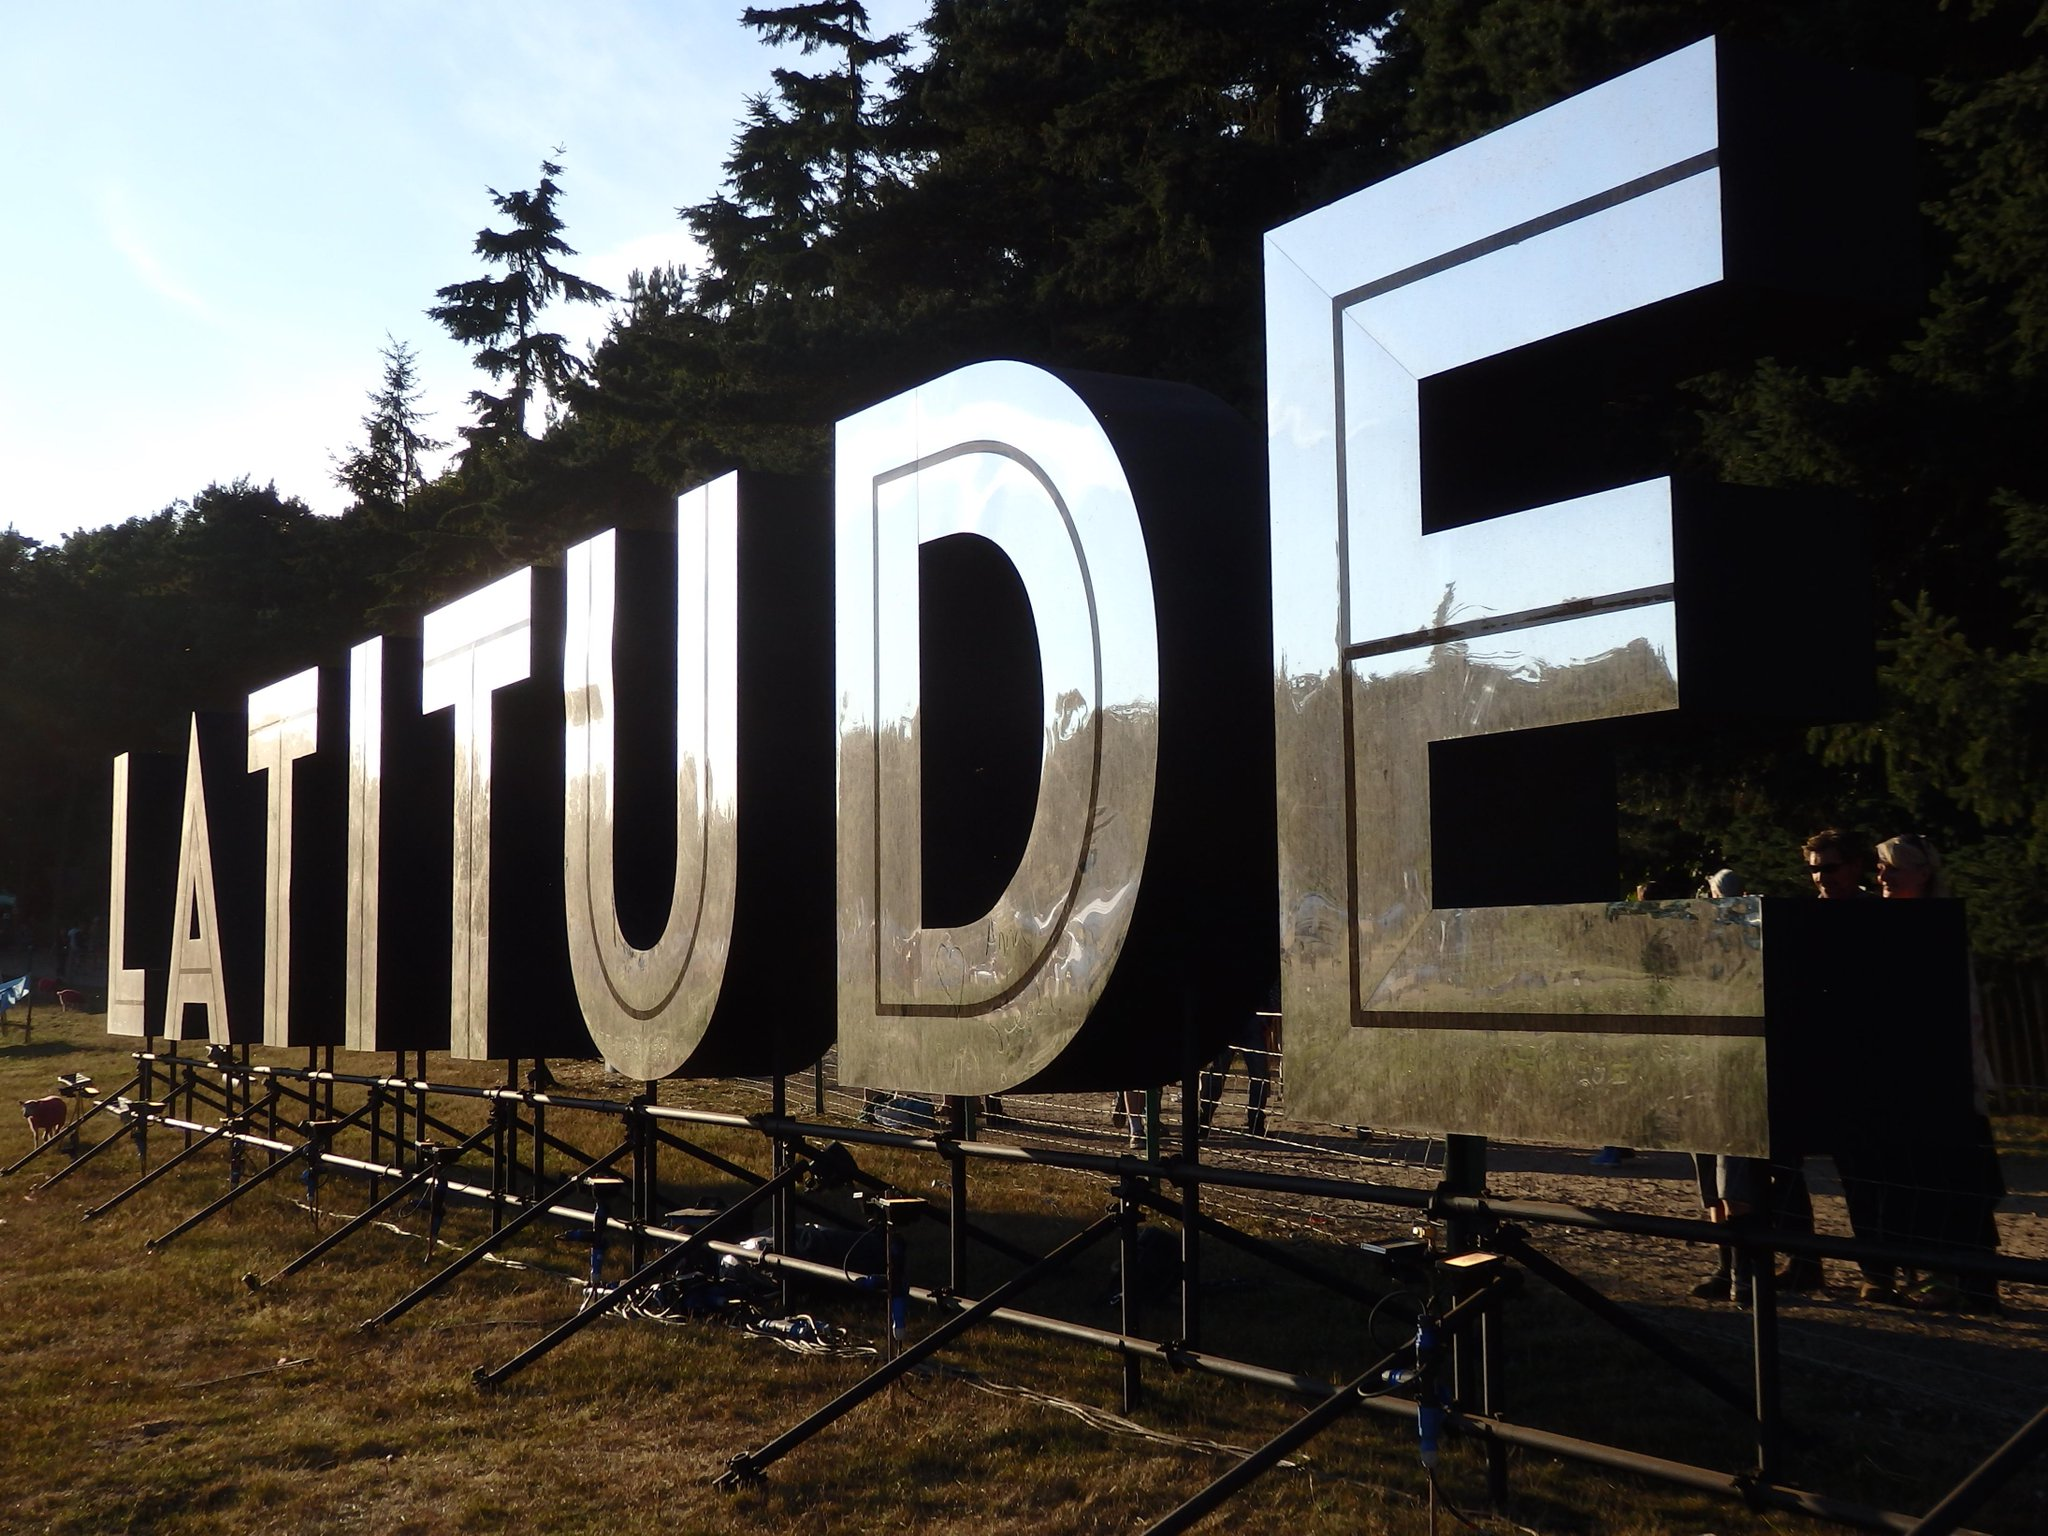 RT @BBCRadio3: #latejunction @BBCRadio3 @LatitudeFest go online for clips, pics and loads more  http://t.co/5s2zYfyY4z http://t.co/6fhauFK8…